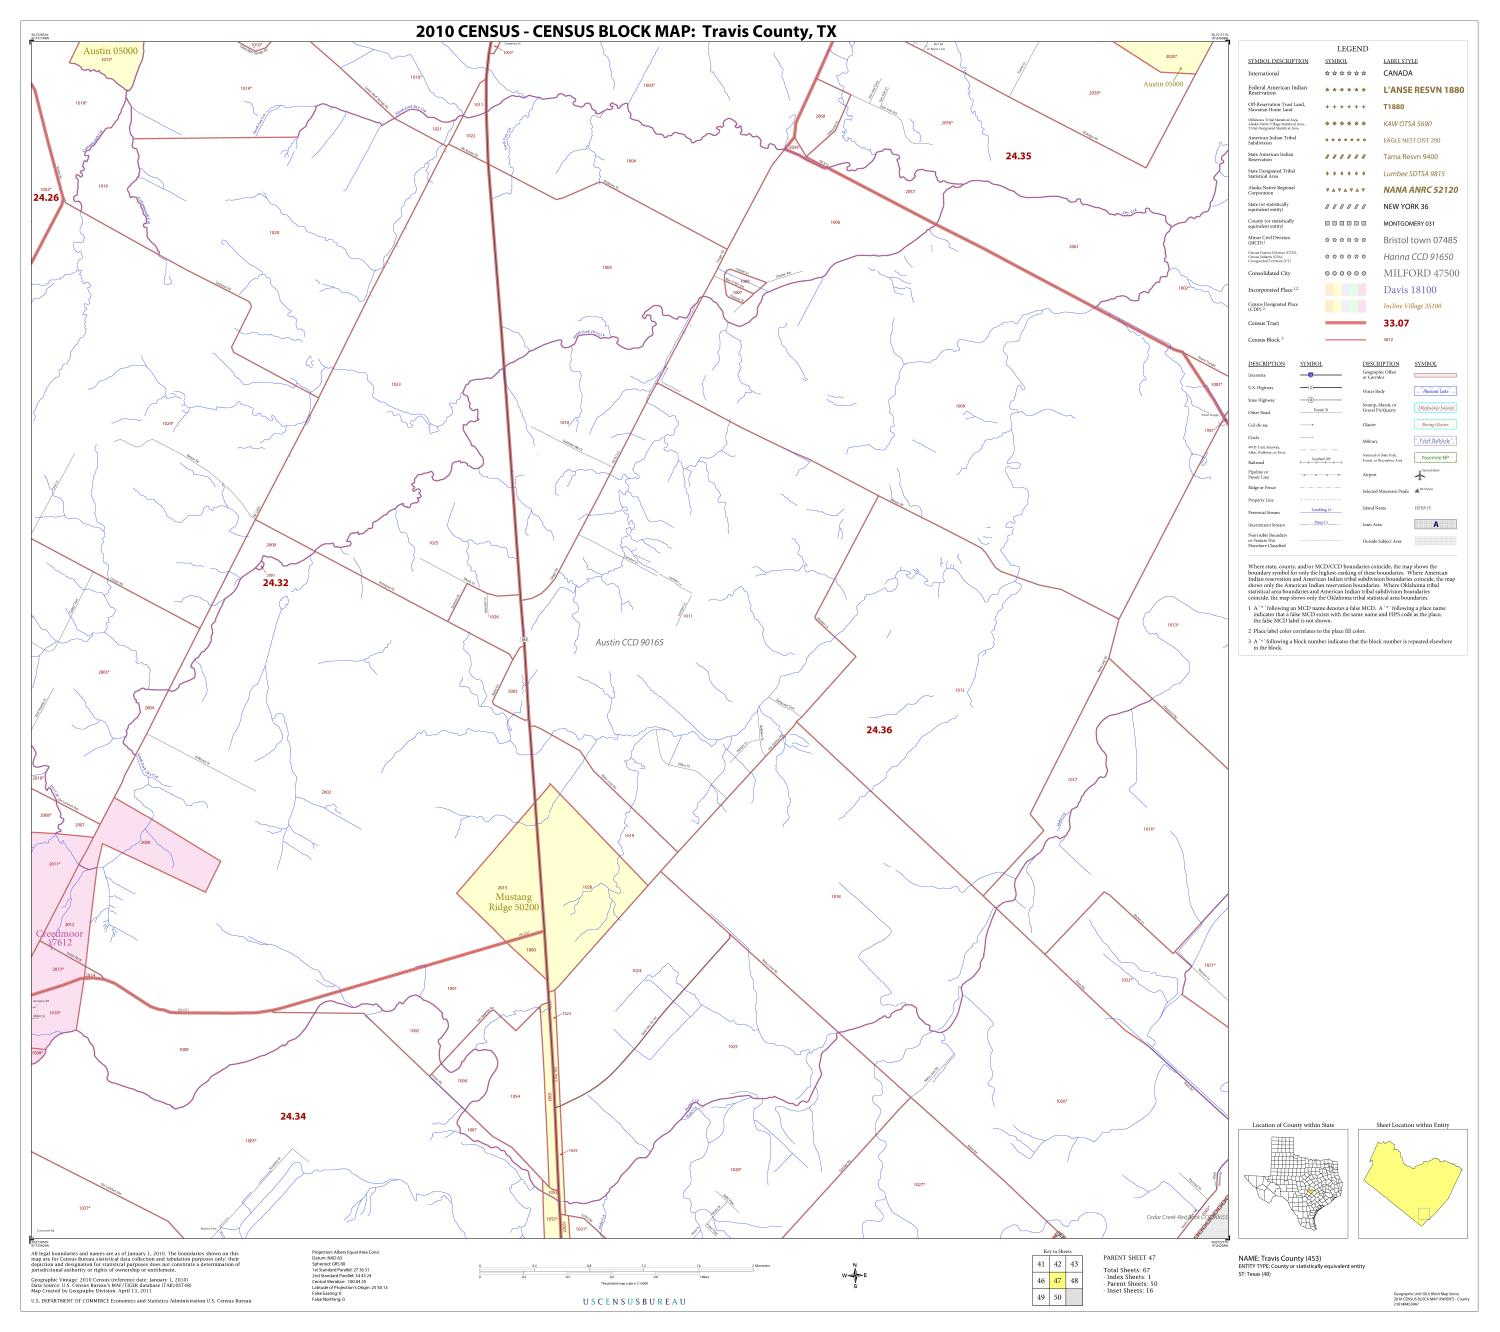 2010 Census County Block Map: Travis County, Block 47                                                                                                      [Sequence #]: 1 of 1